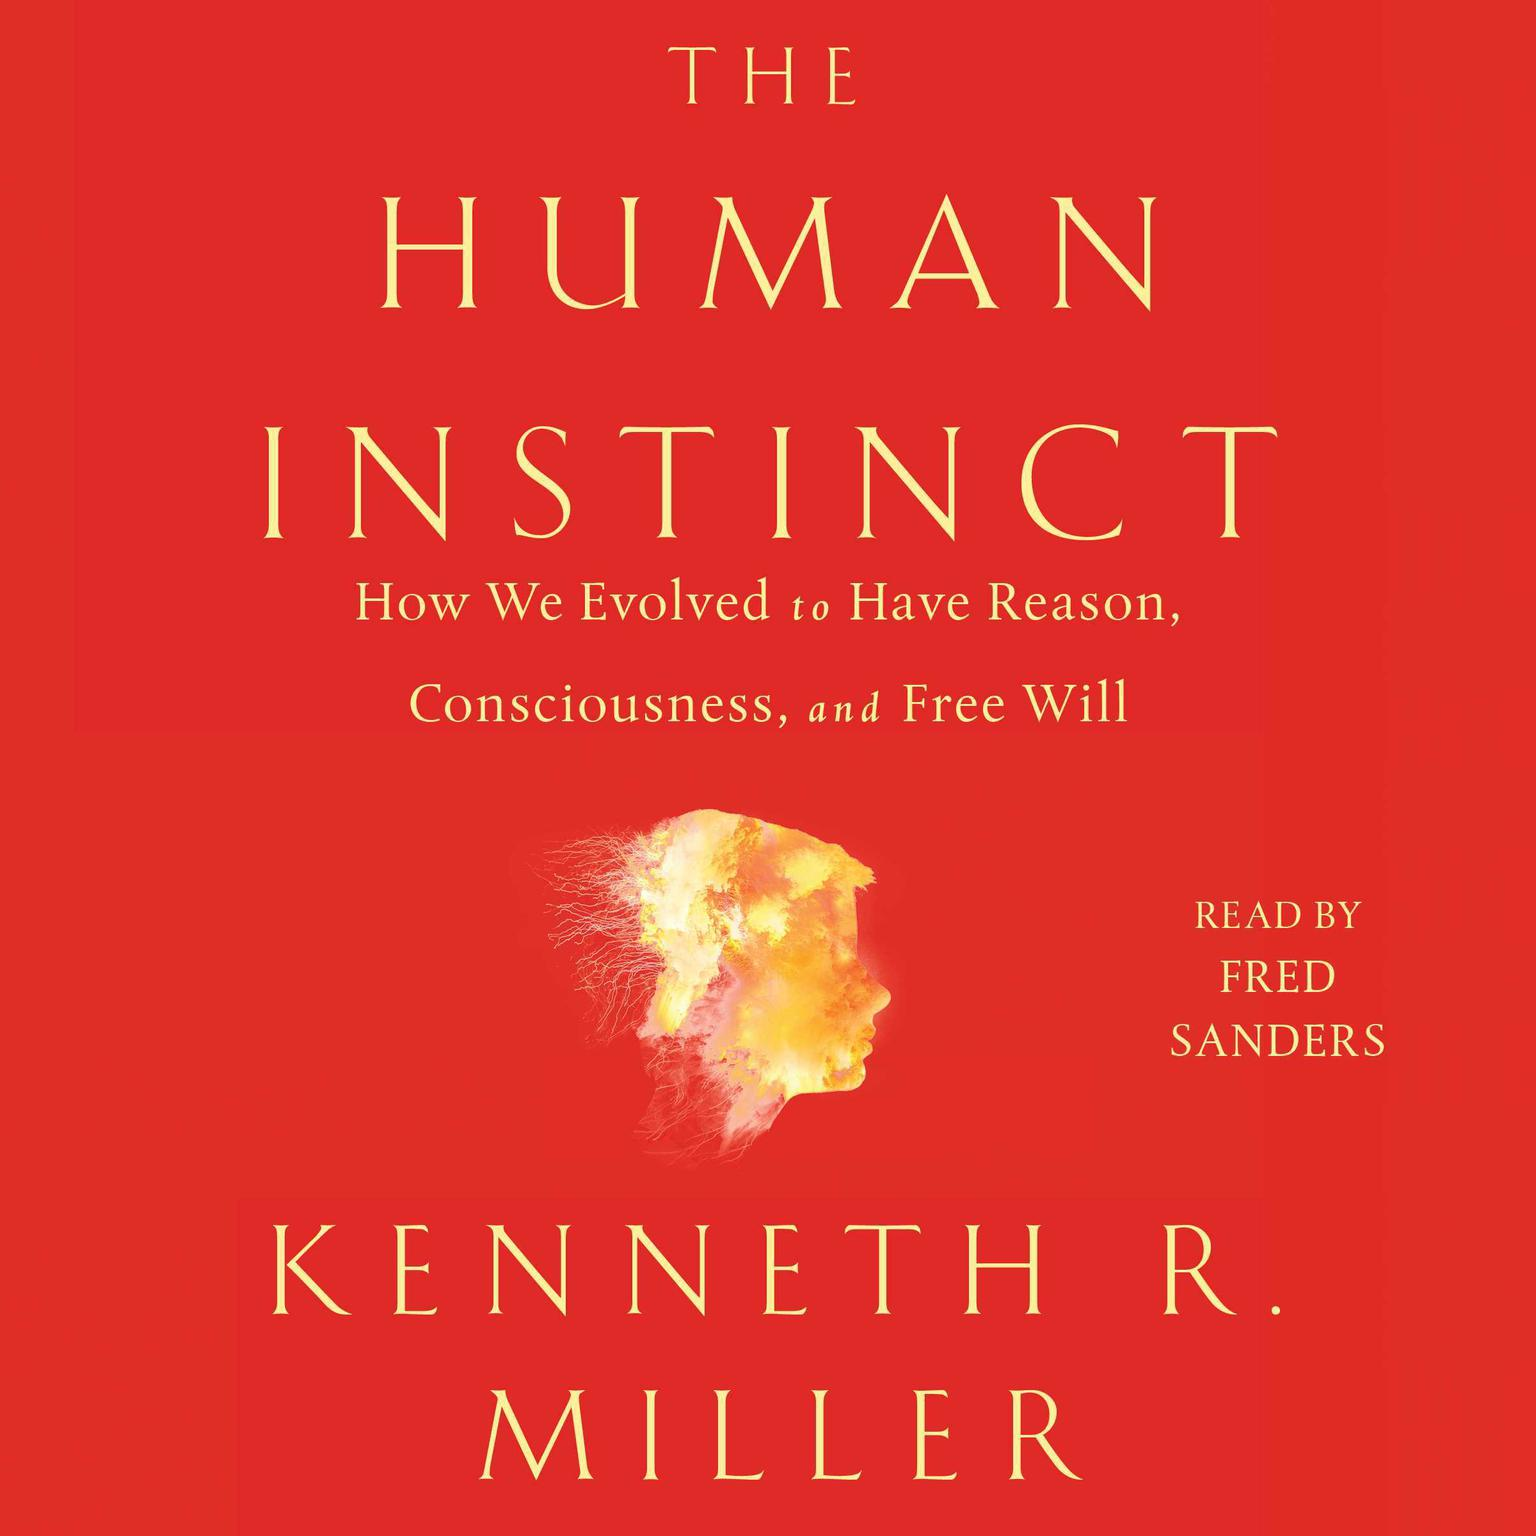 Printable The Human Instinct: How We Evolved to Have Reason, Consciousness, and Free Will Audiobook Cover Art